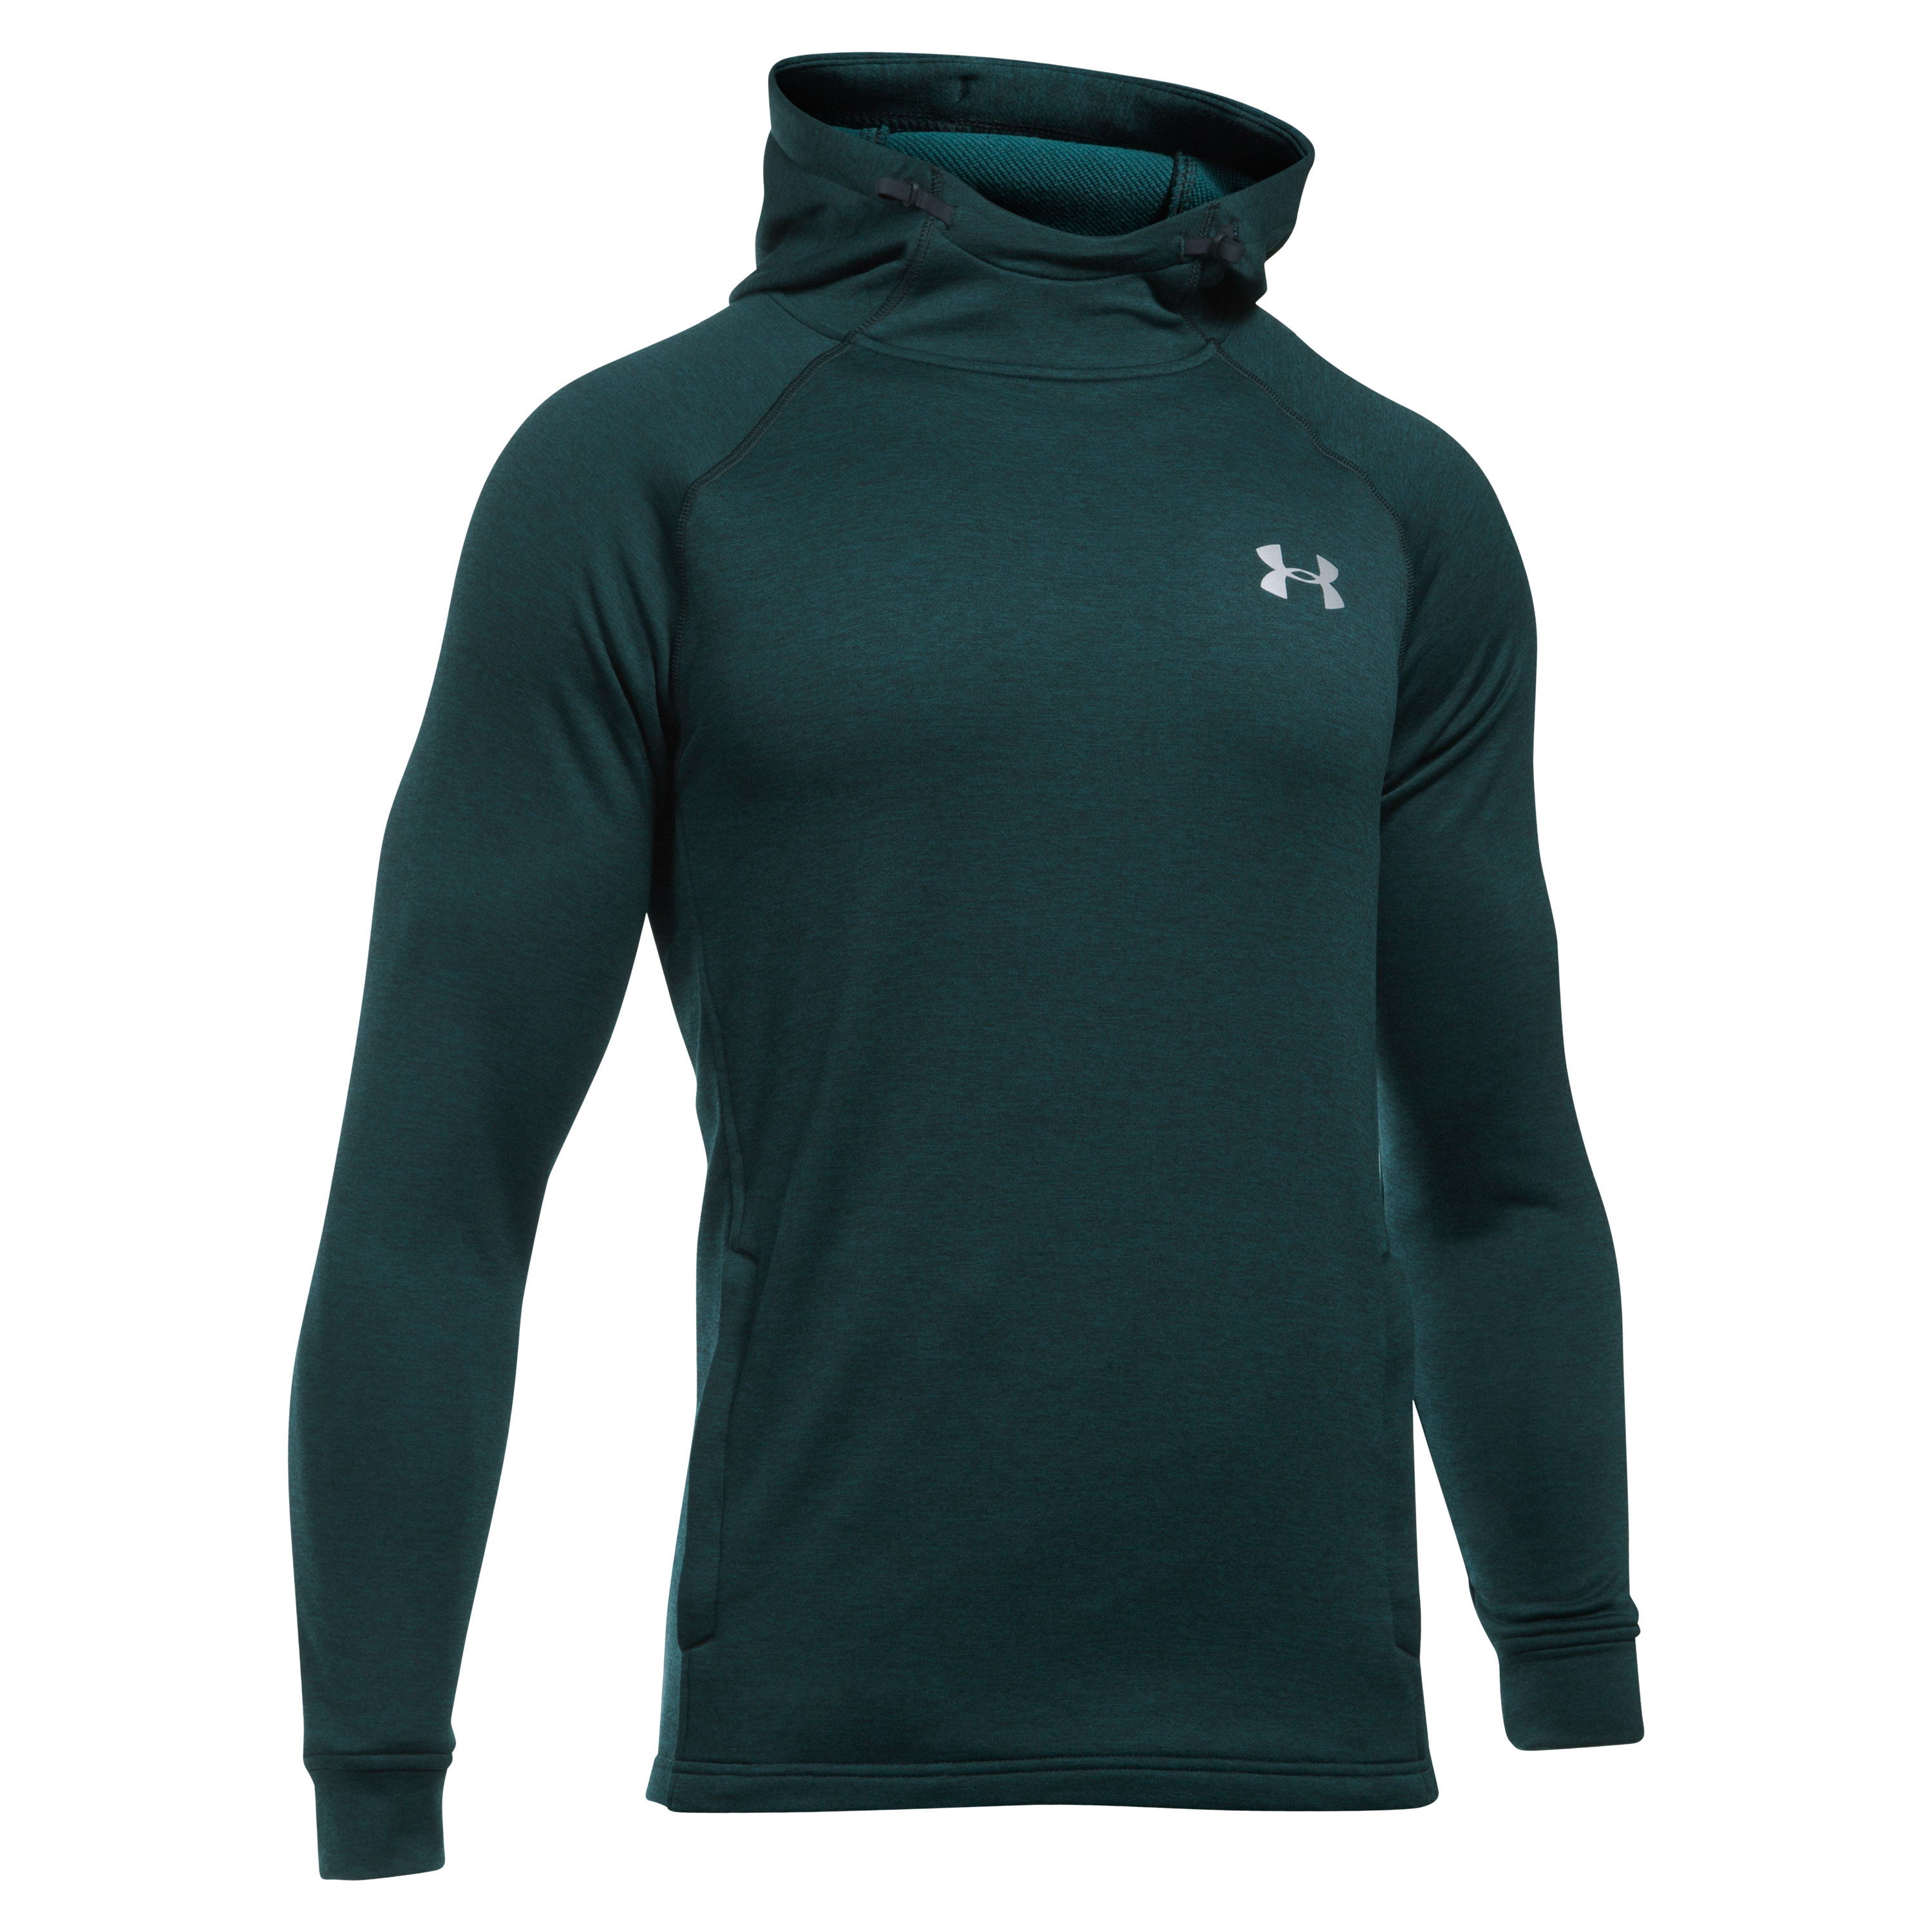 Under Armour Hoodie Tech Terry green